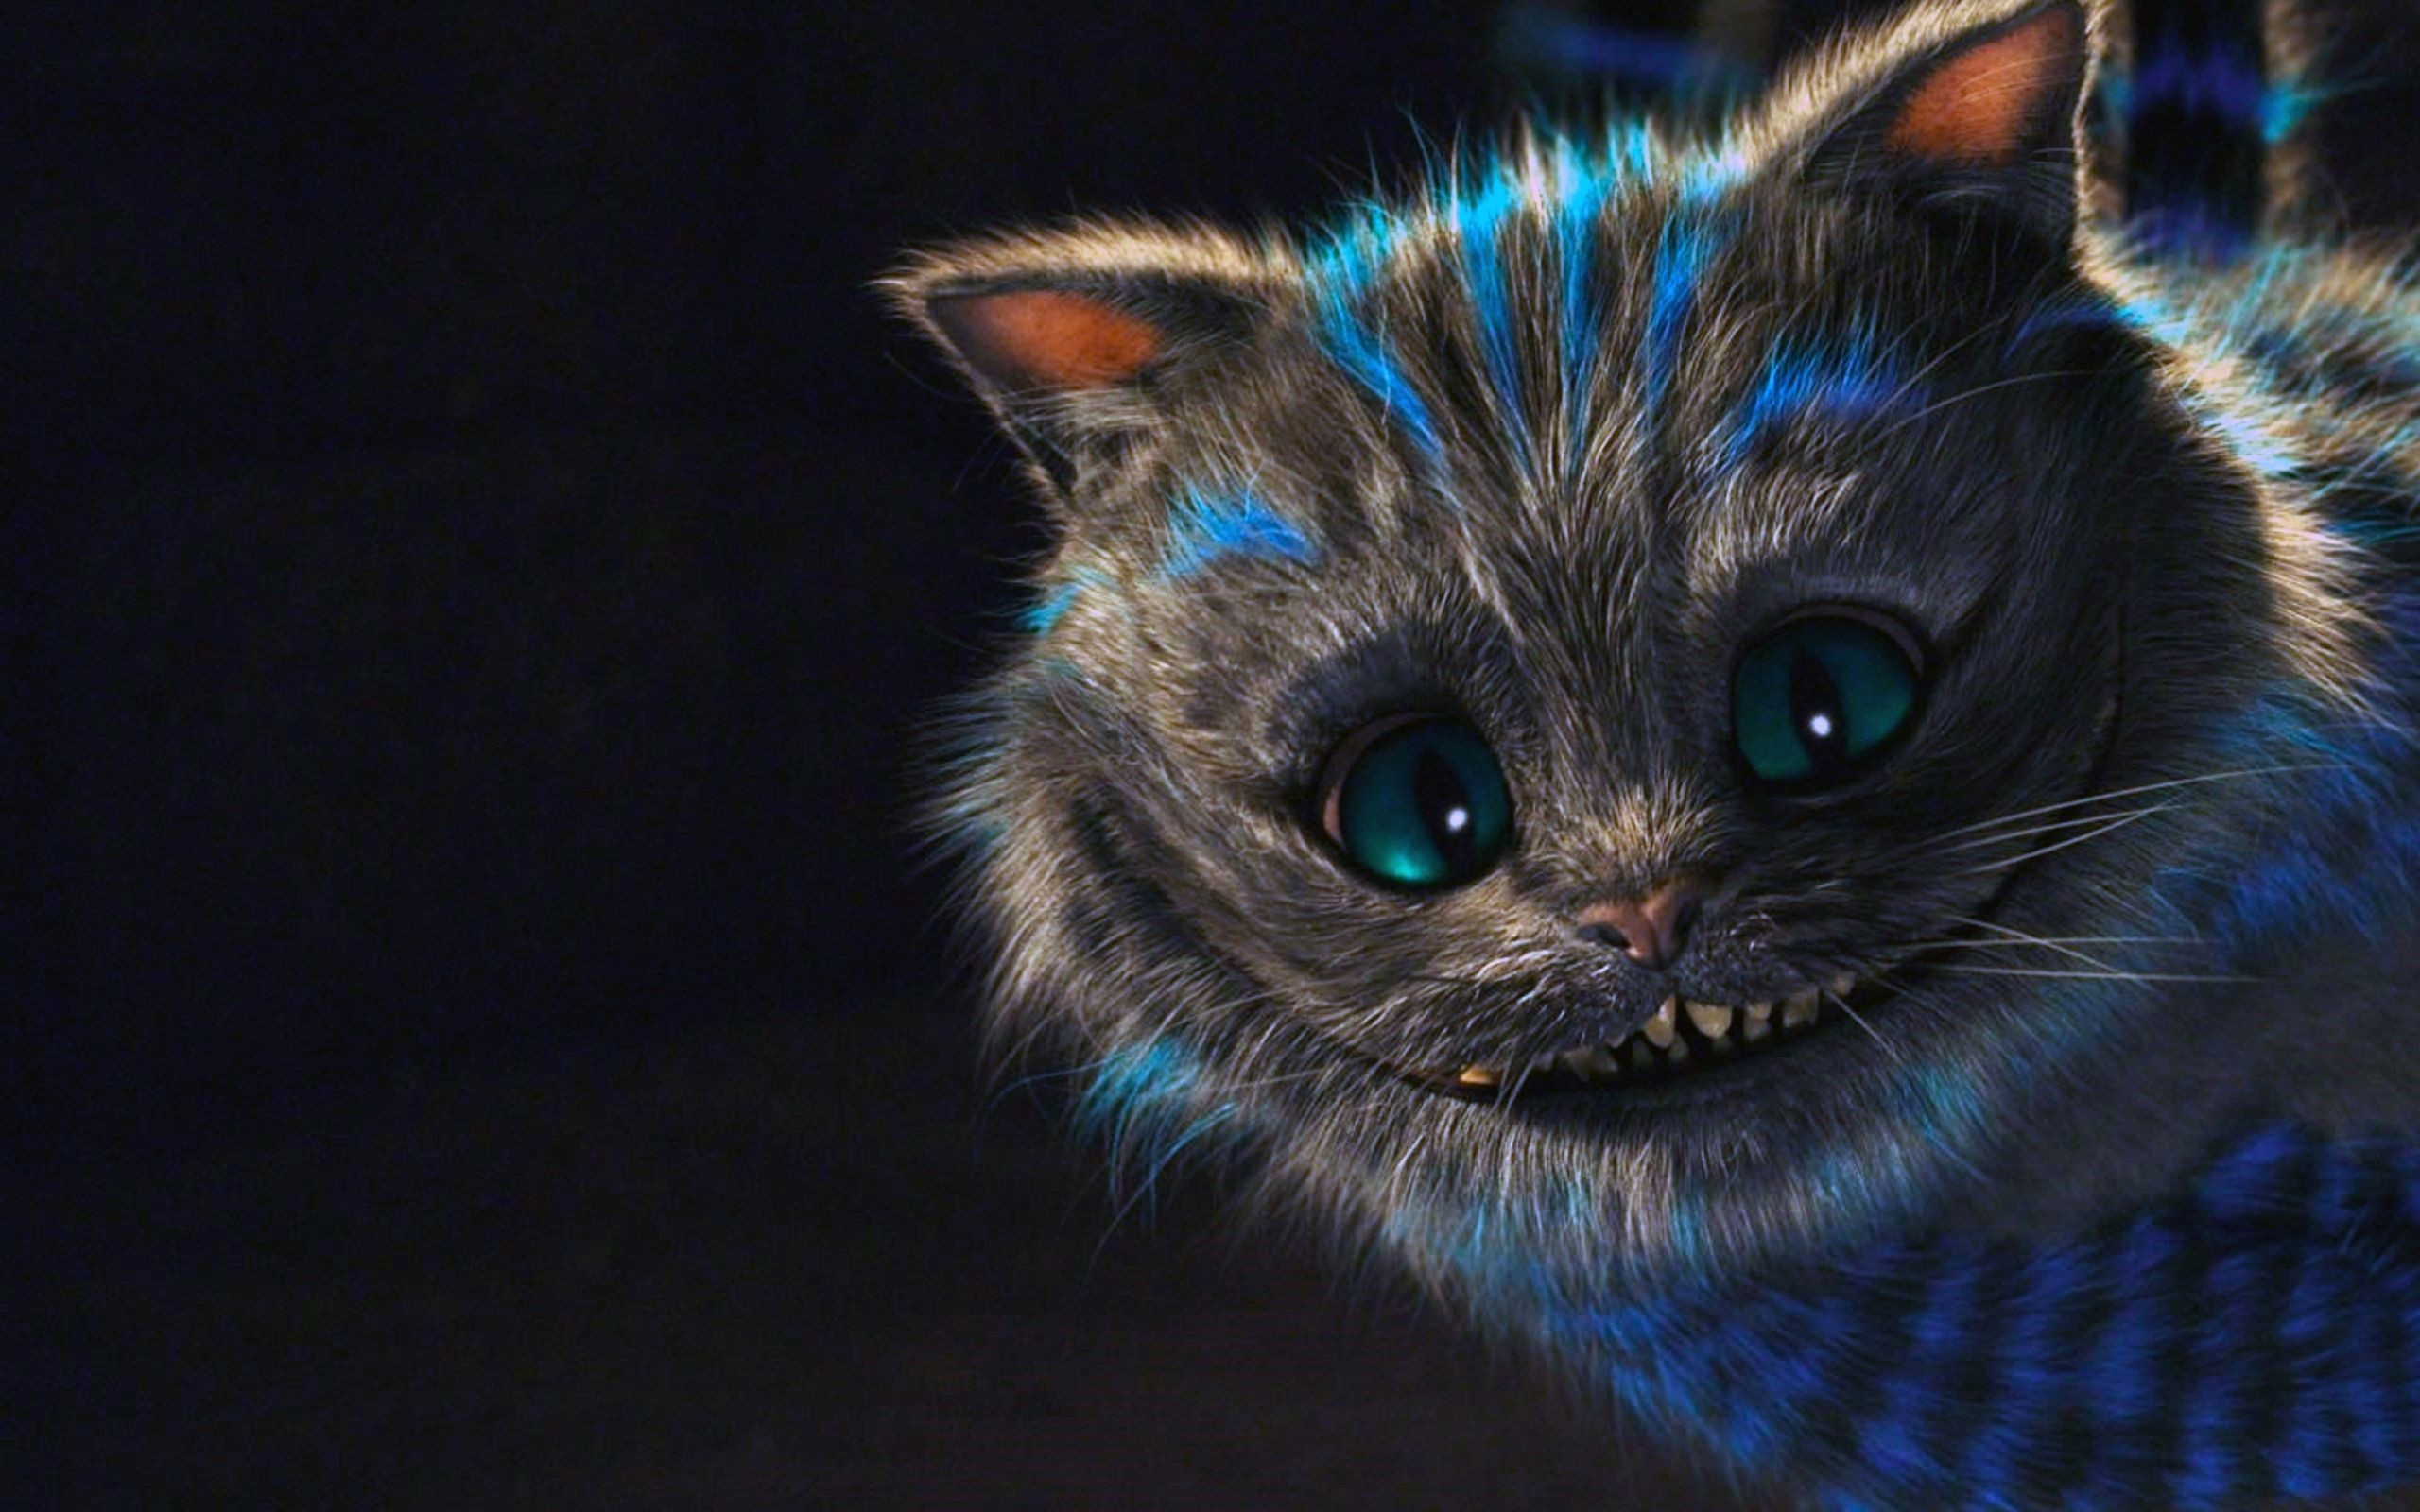 wallpaper.wiki-HD-cheshire-cat-pictures-tumblr-PIC-